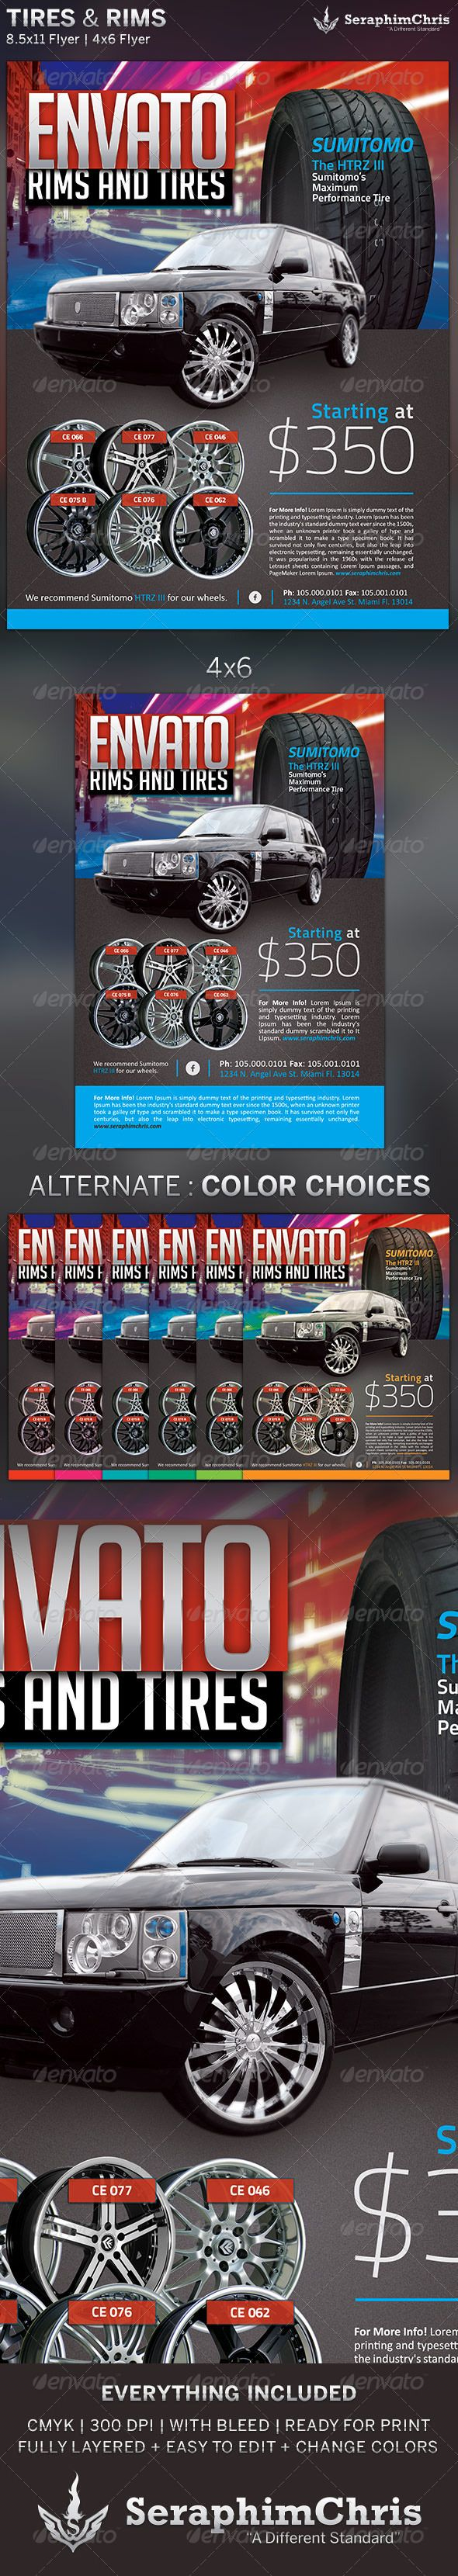 tires and rims s ad flyer template limo flyer template tires and rims s ad flyer template 2 6 00